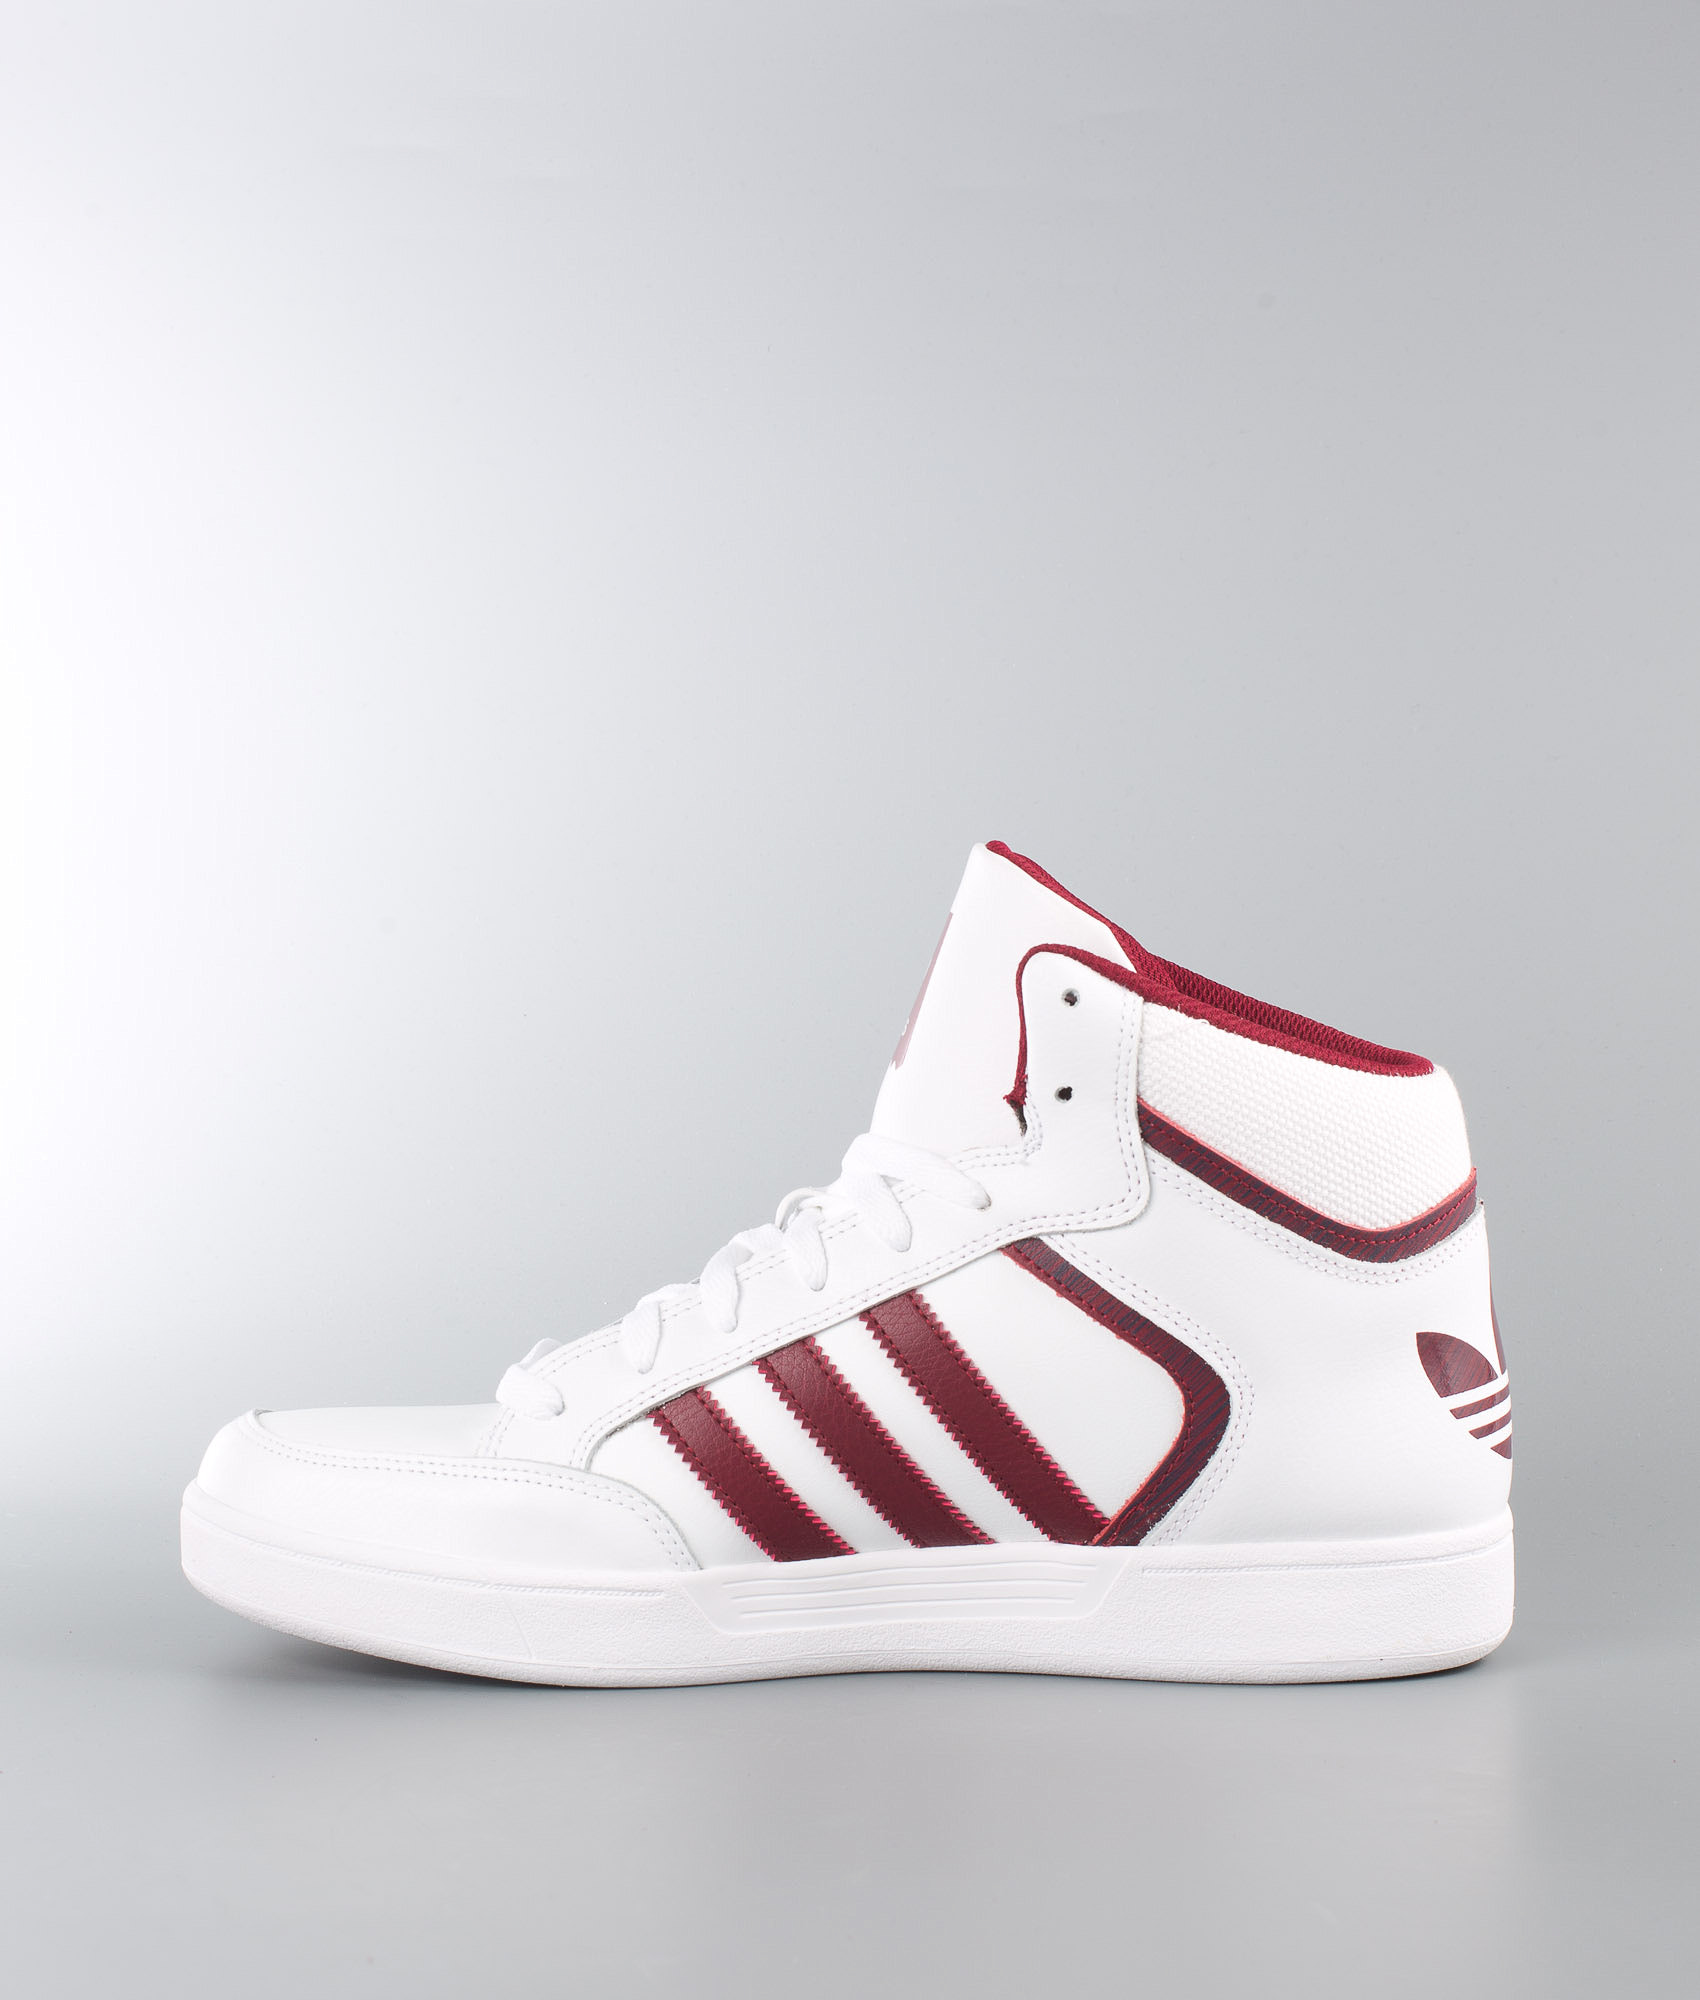 reputable site 85177 c641c Adidas Skateboarding Varial Mid Shoes